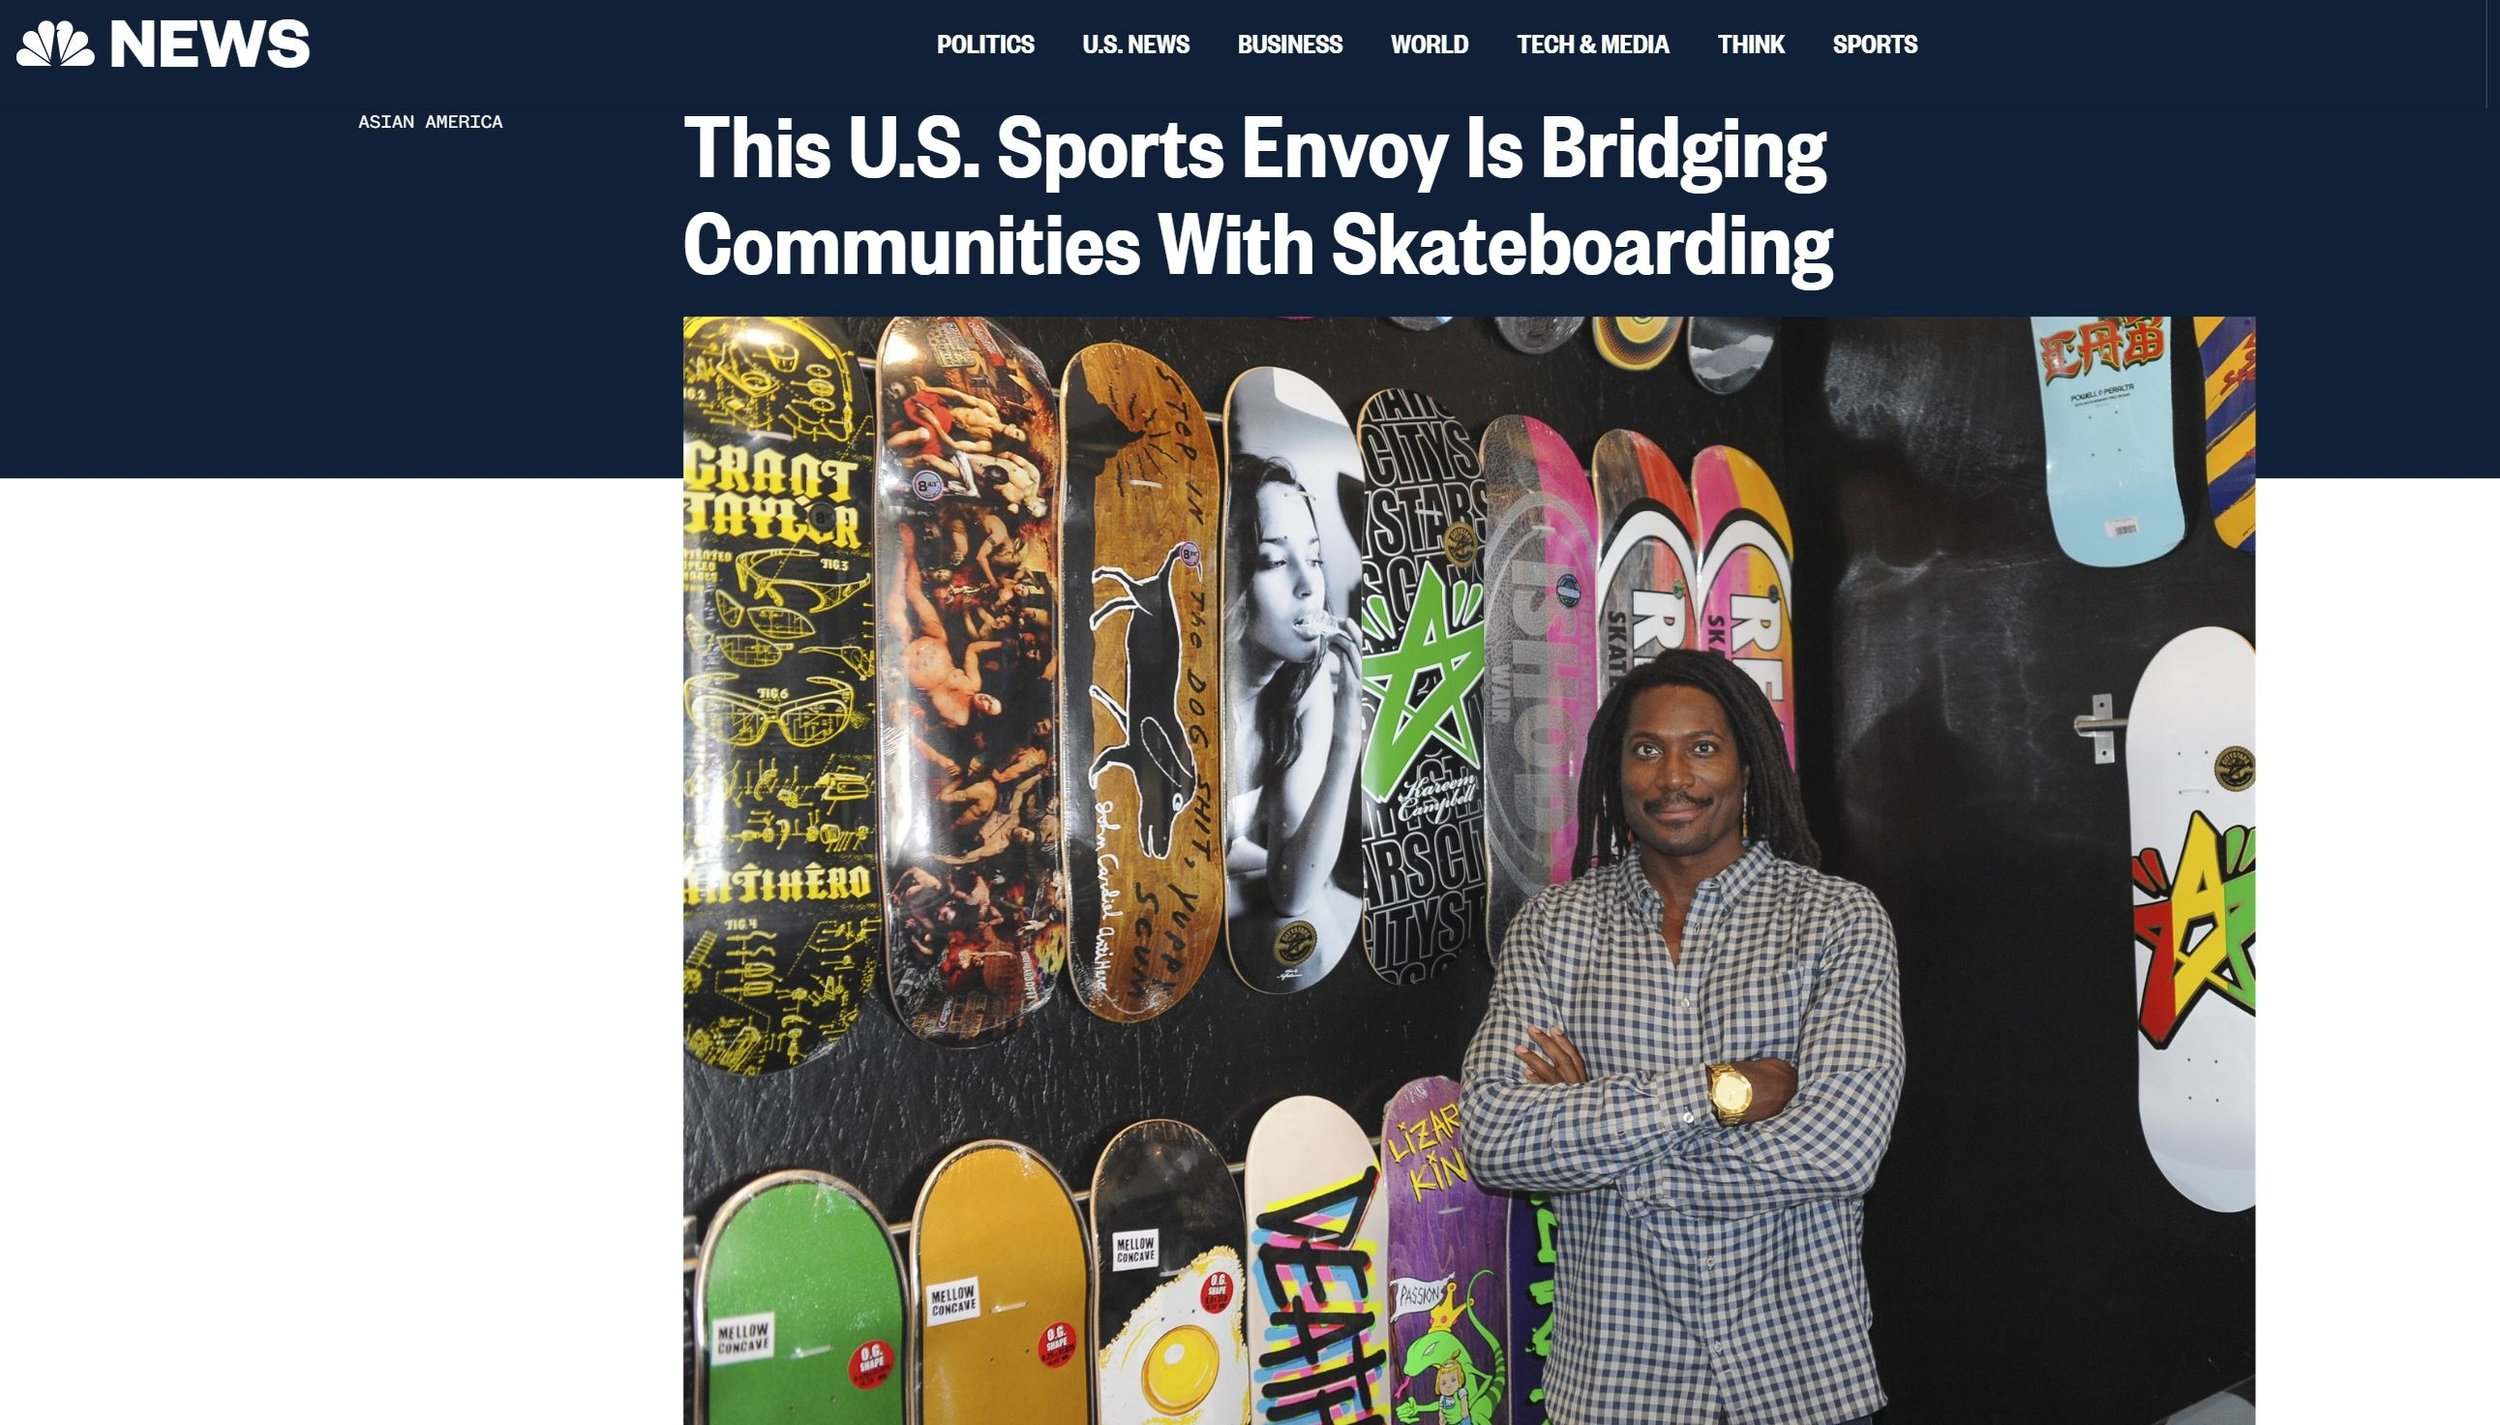 Neftalie Williams lectures at the University of Southern California and works with the U.S. State Department to bridge communities through skateboarding.Courtesy of Neftalie Williams